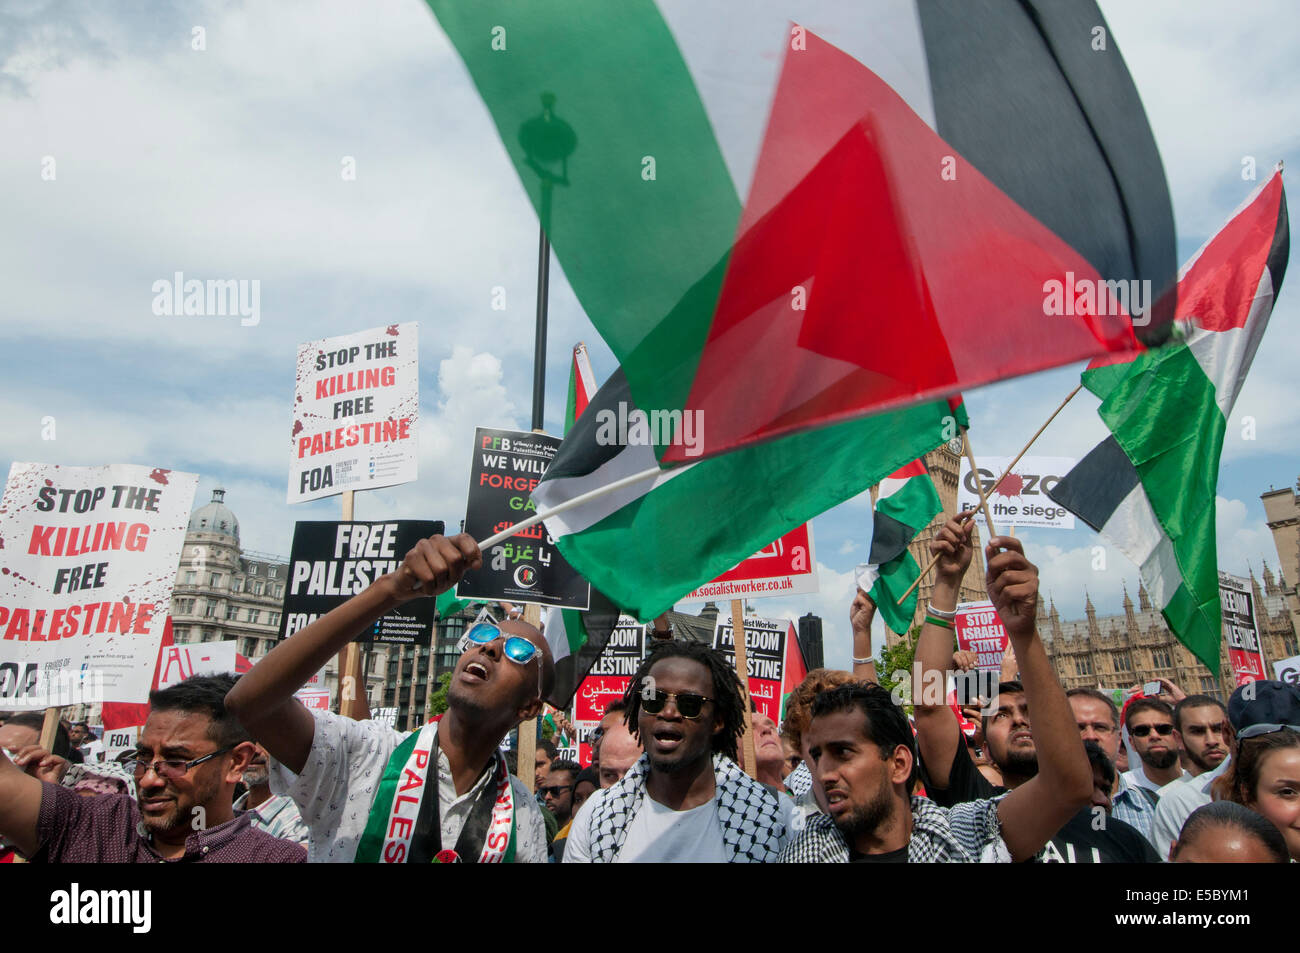 Demonstration against Israeli bombing of Gaza, 26.07.2014. Protesters listen to speeches and wave Palestinian flags. - Stock Image